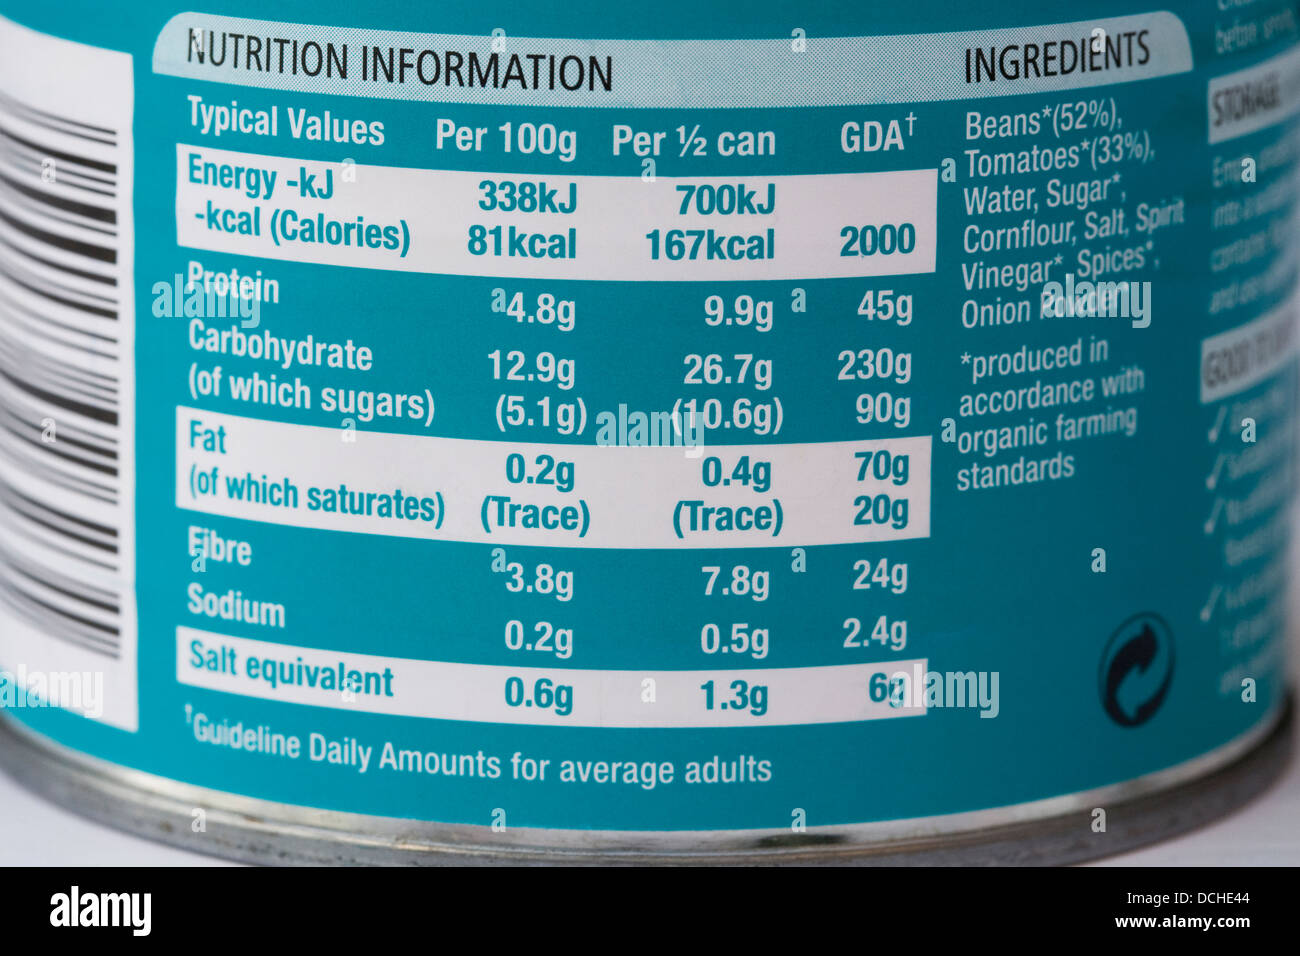 Nutritional Information On A Baked Bean Can Stock Photo Alamy